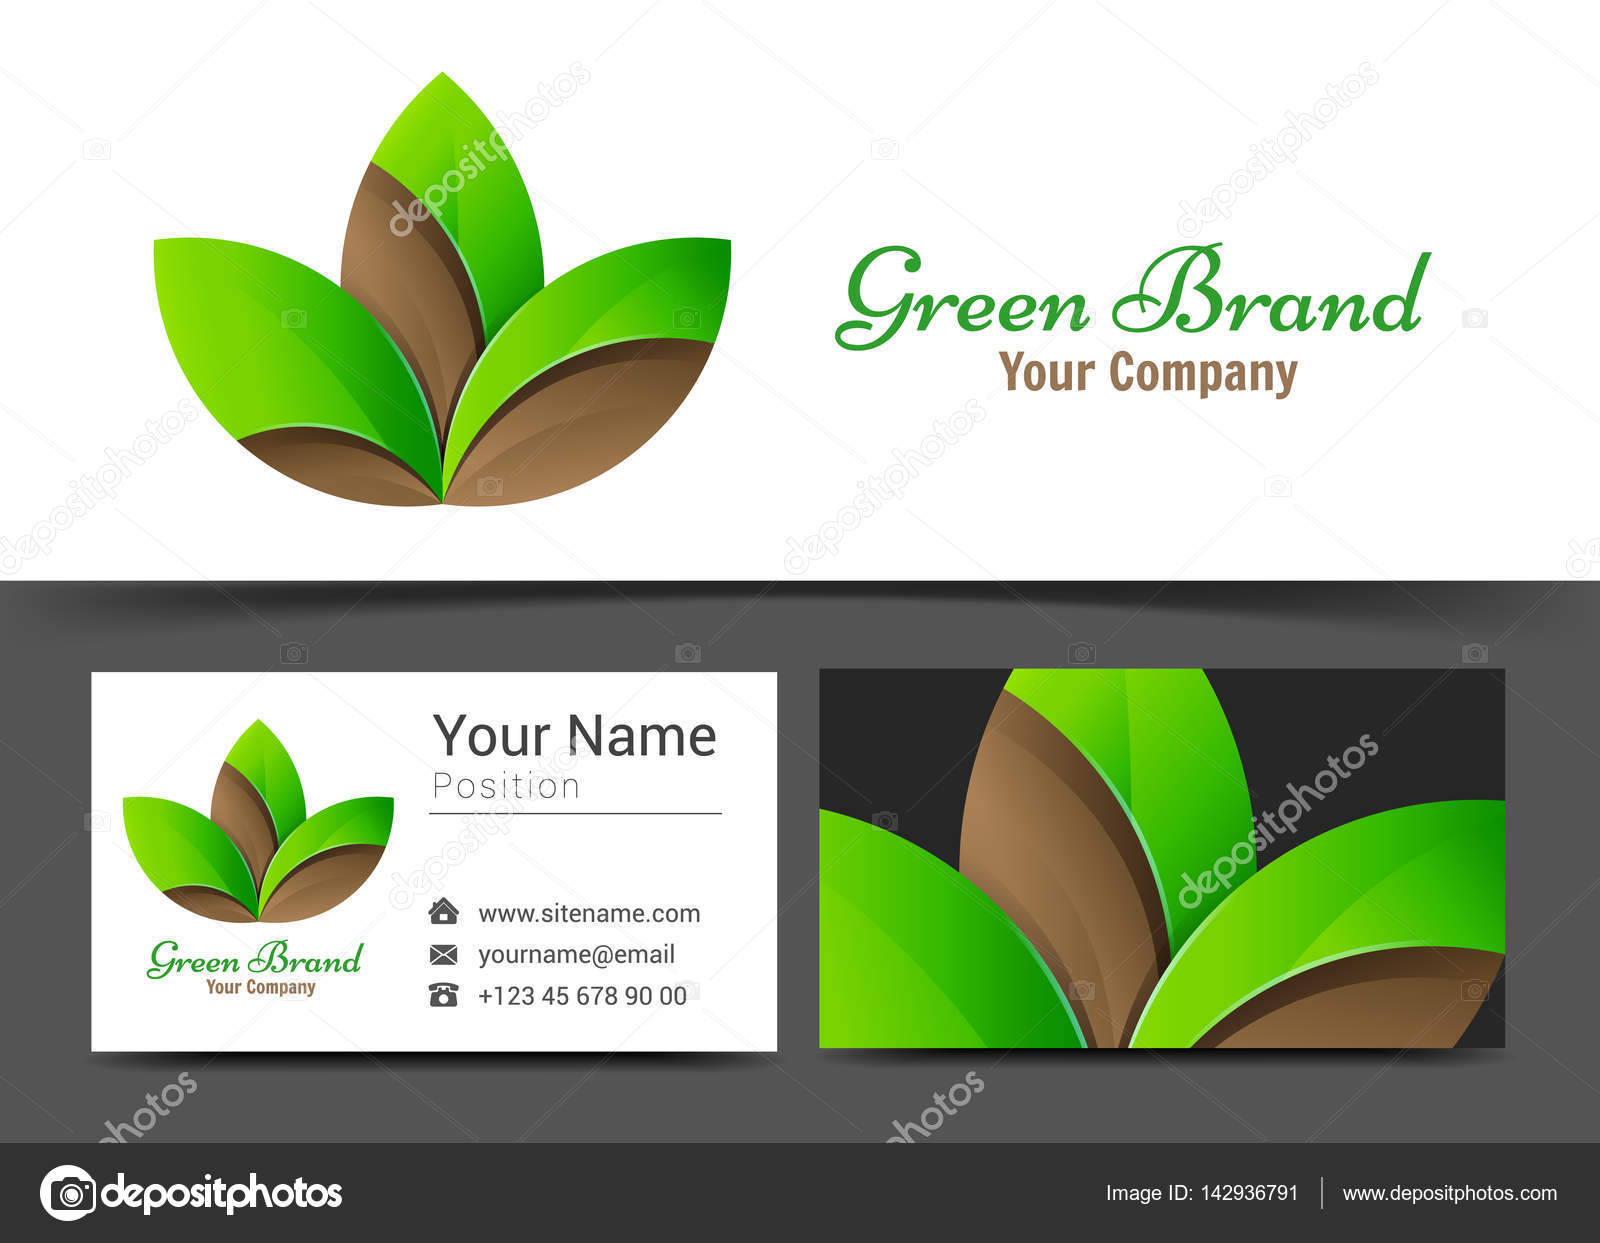 Feuille Symbole De La Spa Corporate Logo Et Carte Visite Signent Modele Design Creatif Avec Composition Didentite Visuelle Entreprise Colore